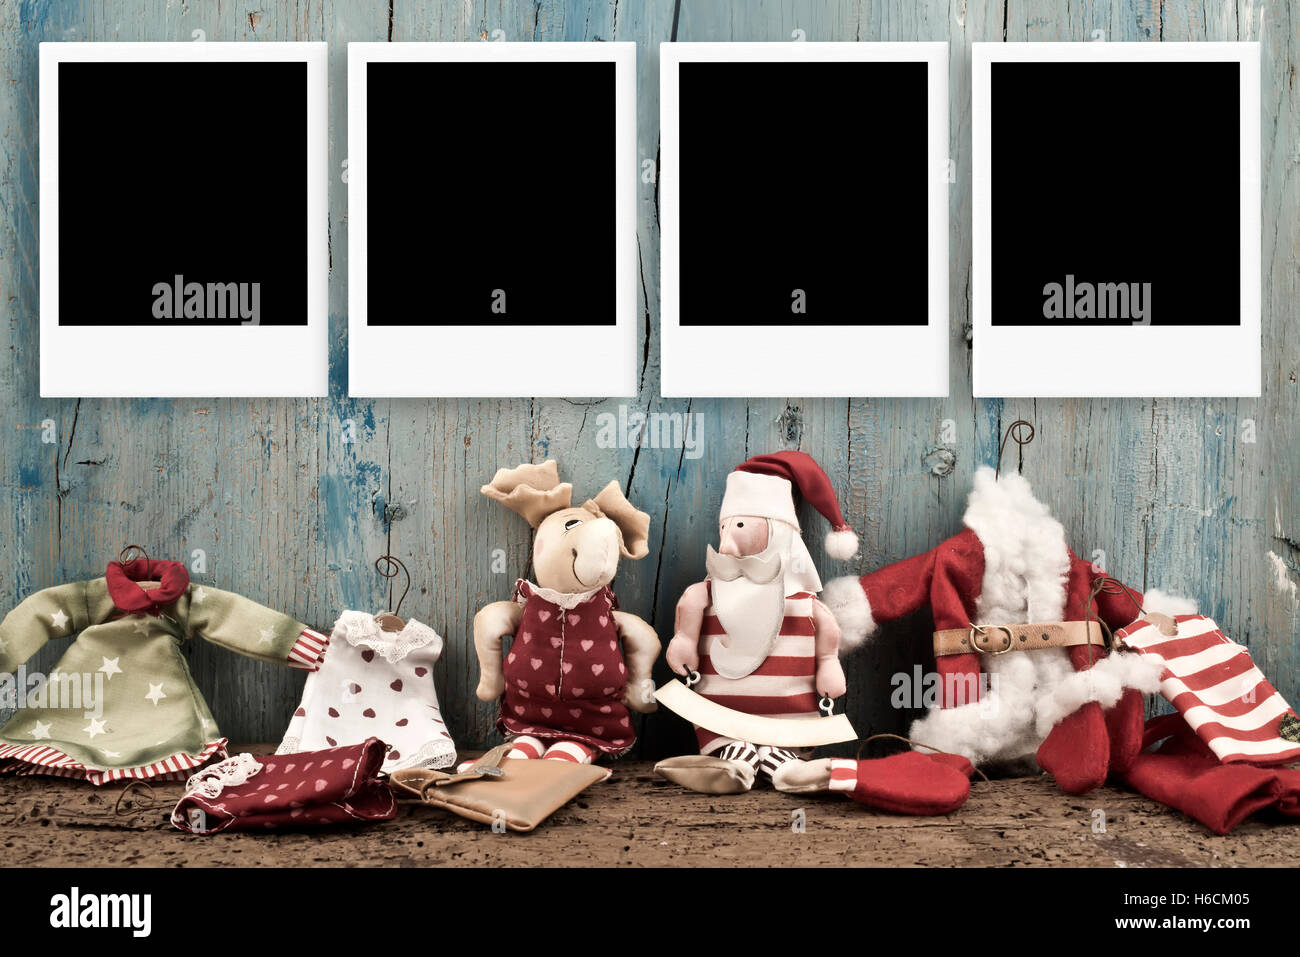 Album Cover With Wooden Frames Stock Photos & Album Cover With ...